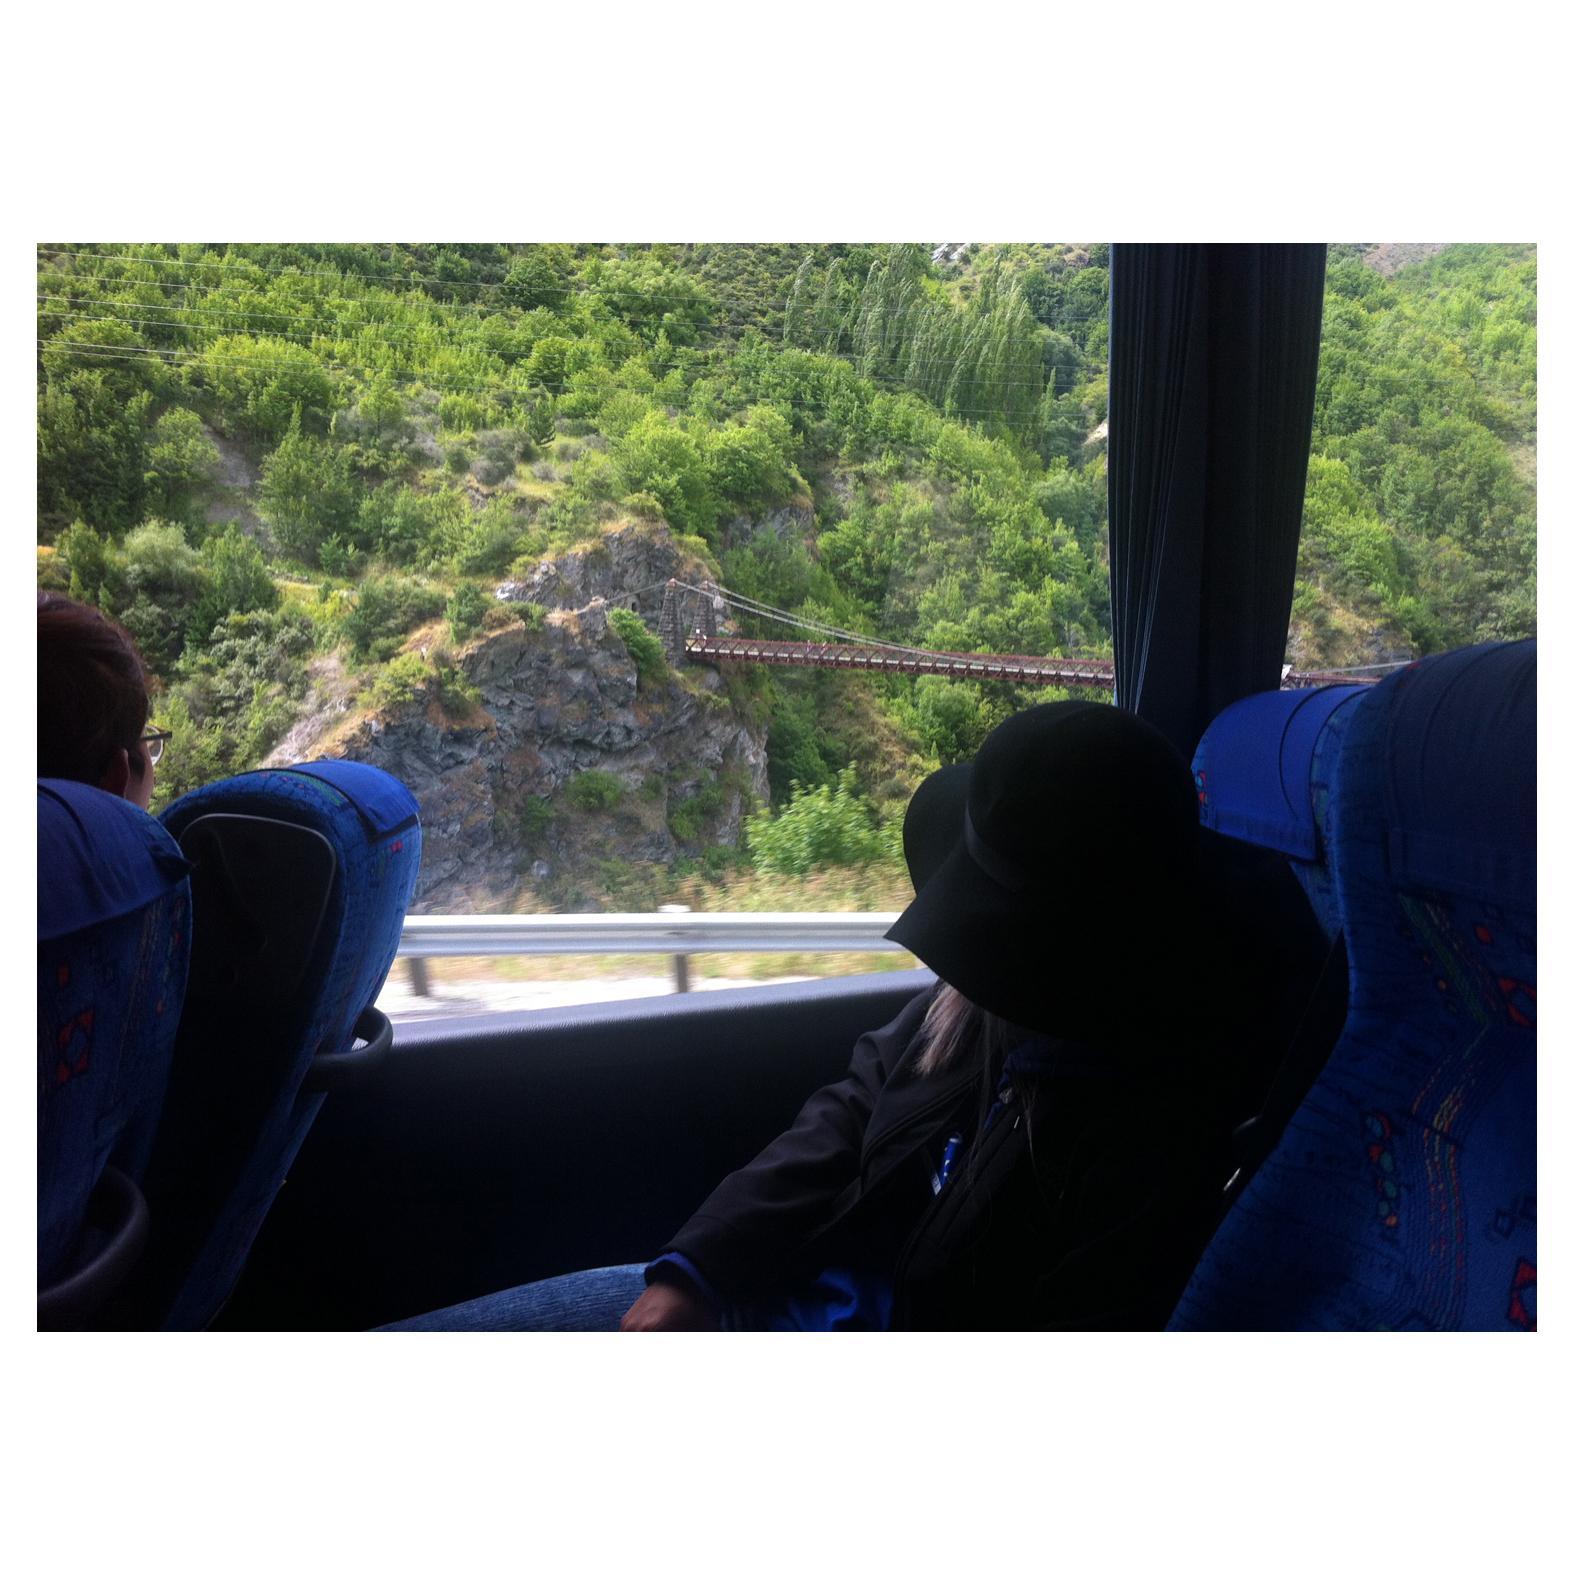 InterCity_Wanaka_to_Queenstown_Aotearoa_NewZealand_Wee.jpg